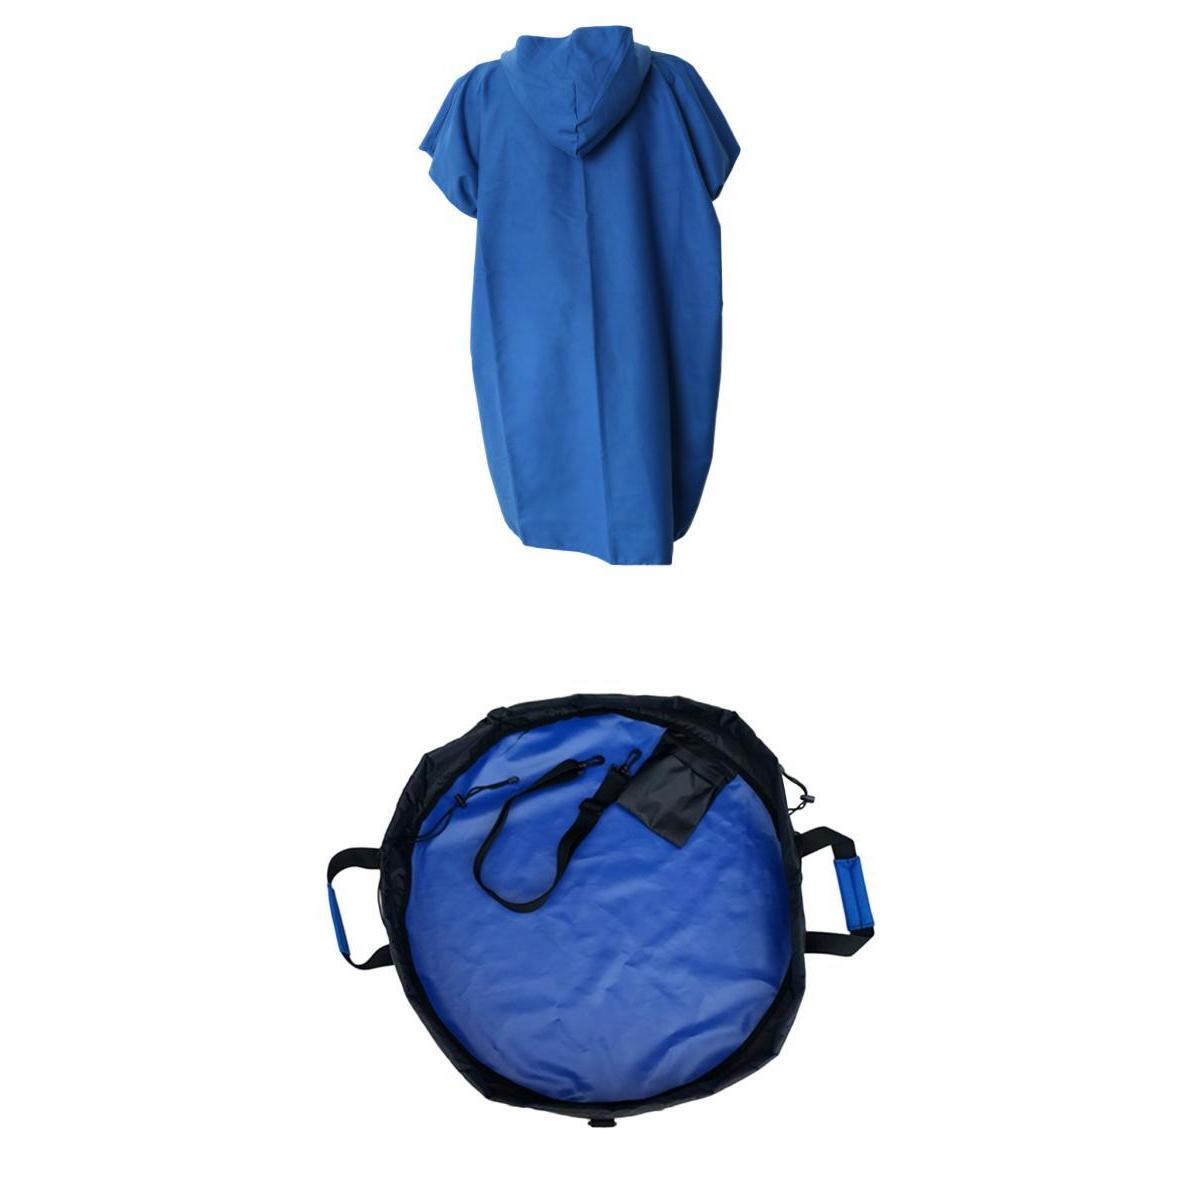 Portable Surf Poncho Robe With Hood Wetsuit Changing Towel+ Changing Mat Bag